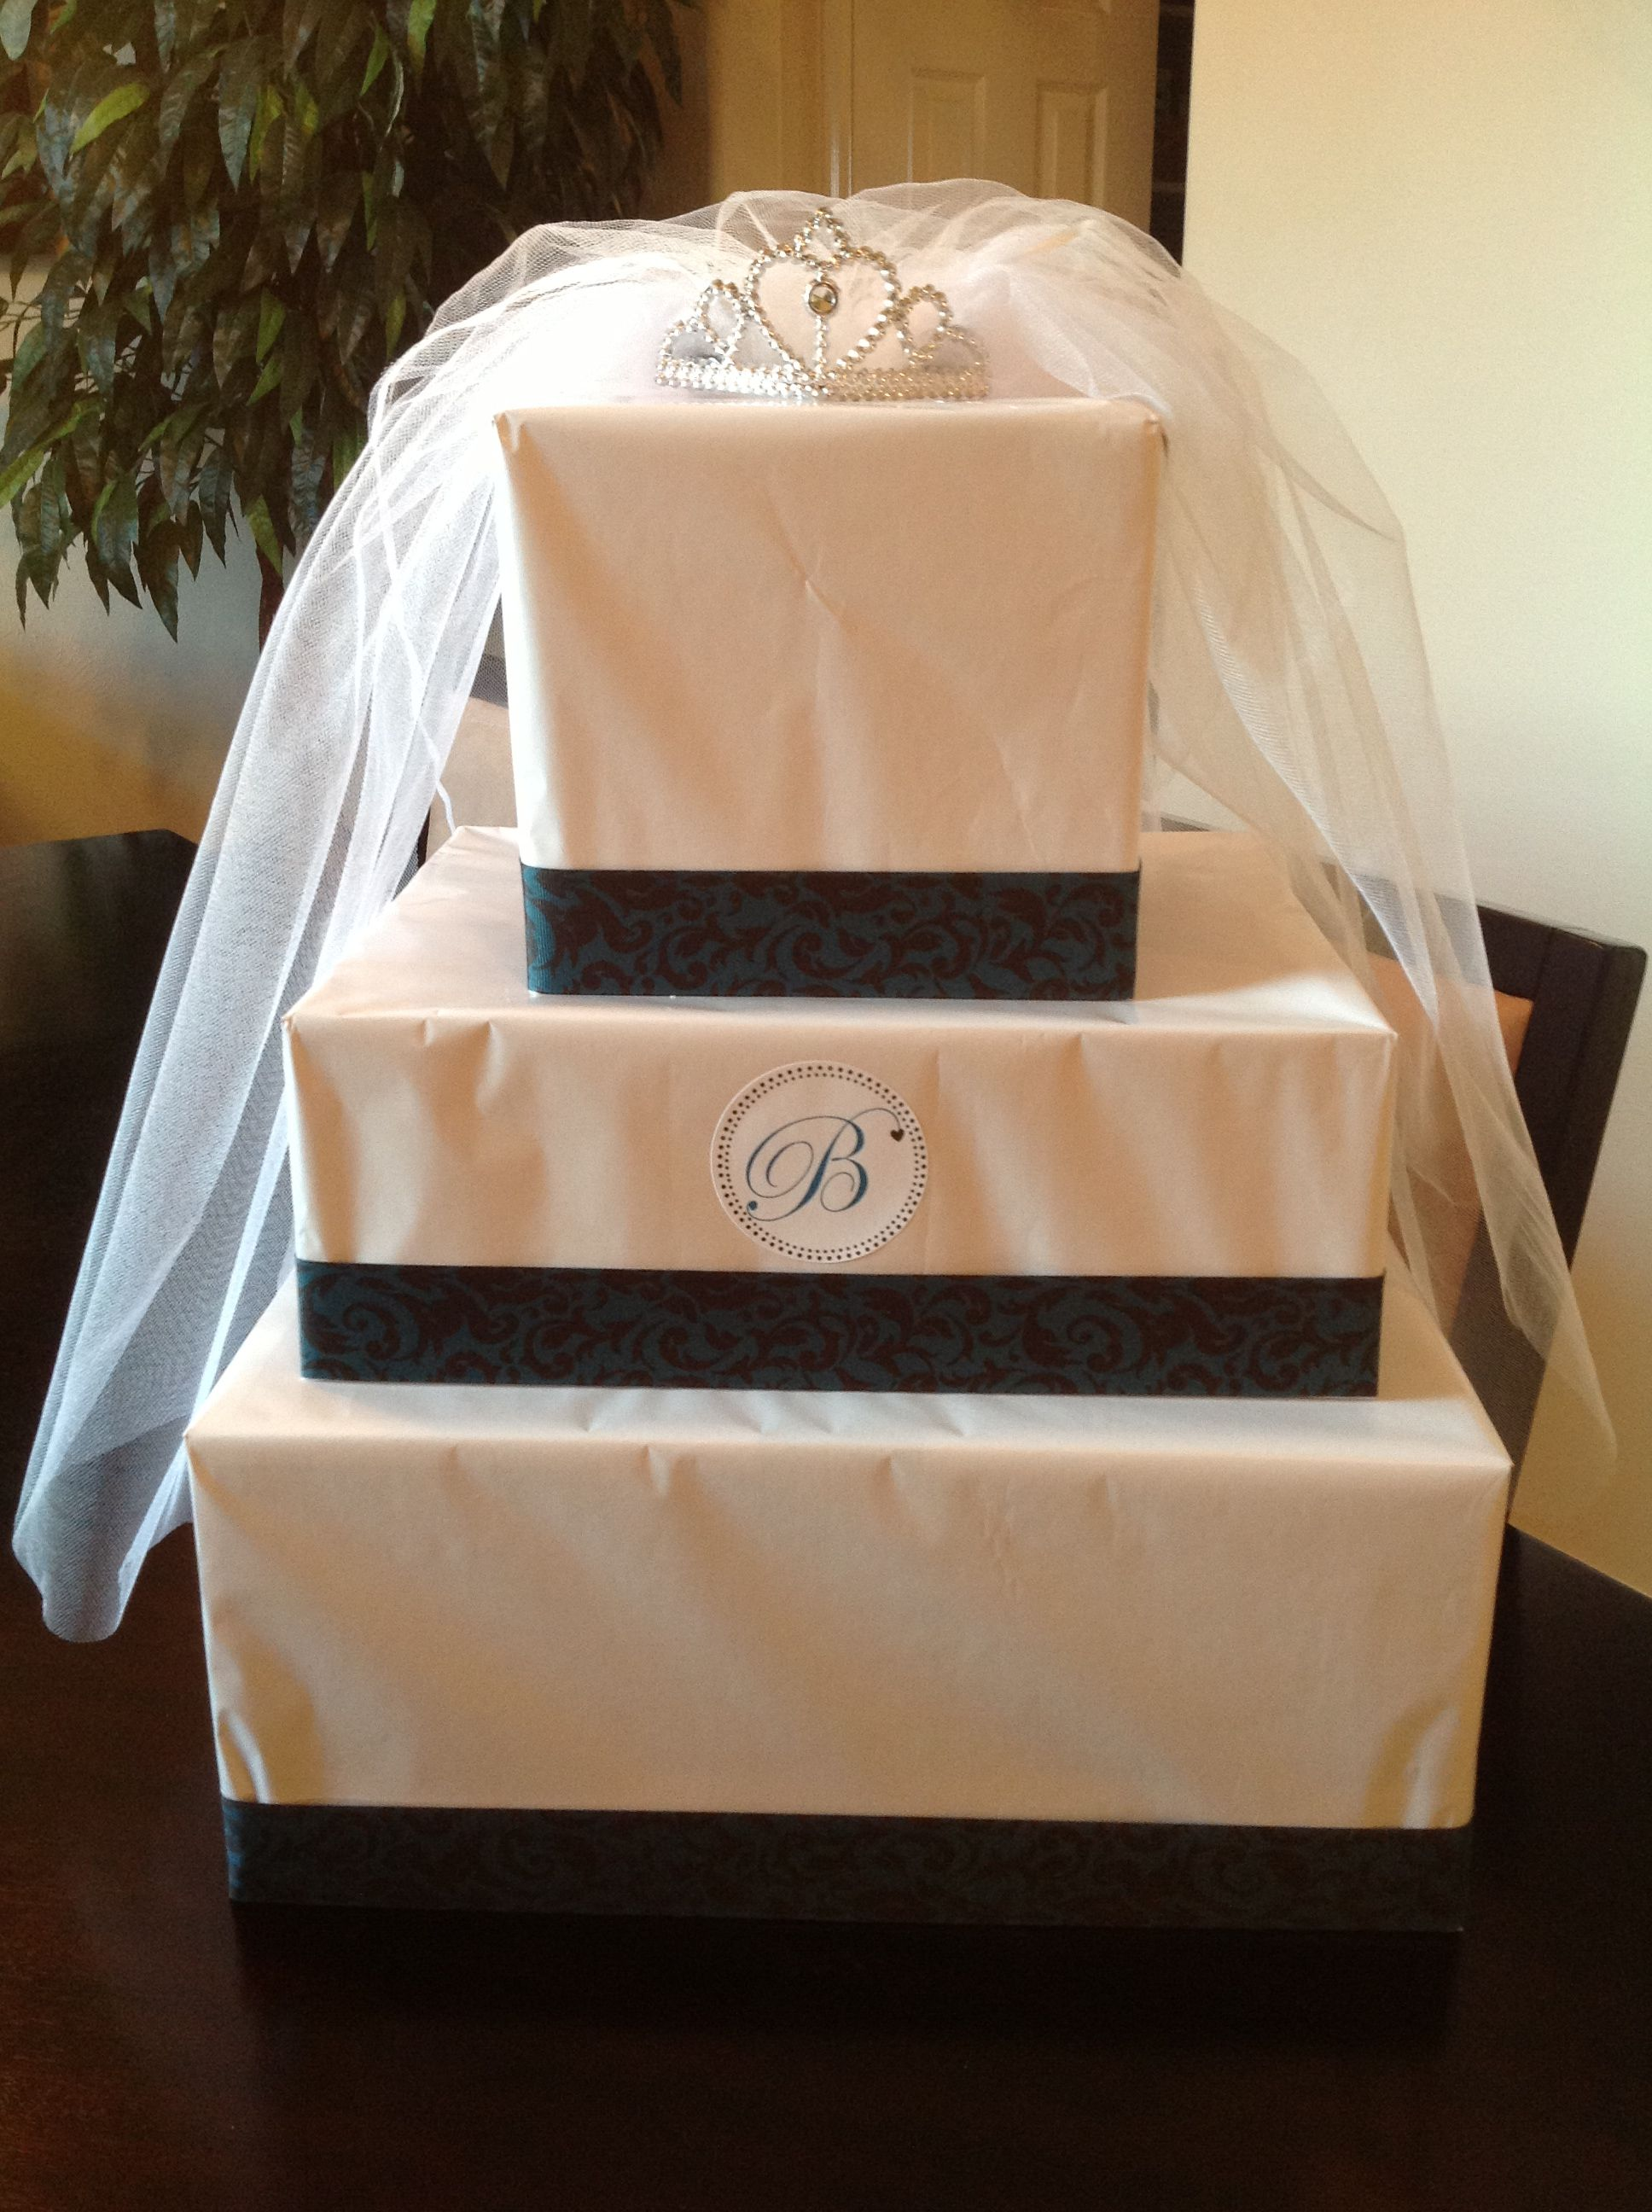 bridal shower gift wrapping idea gift made to look like a cake